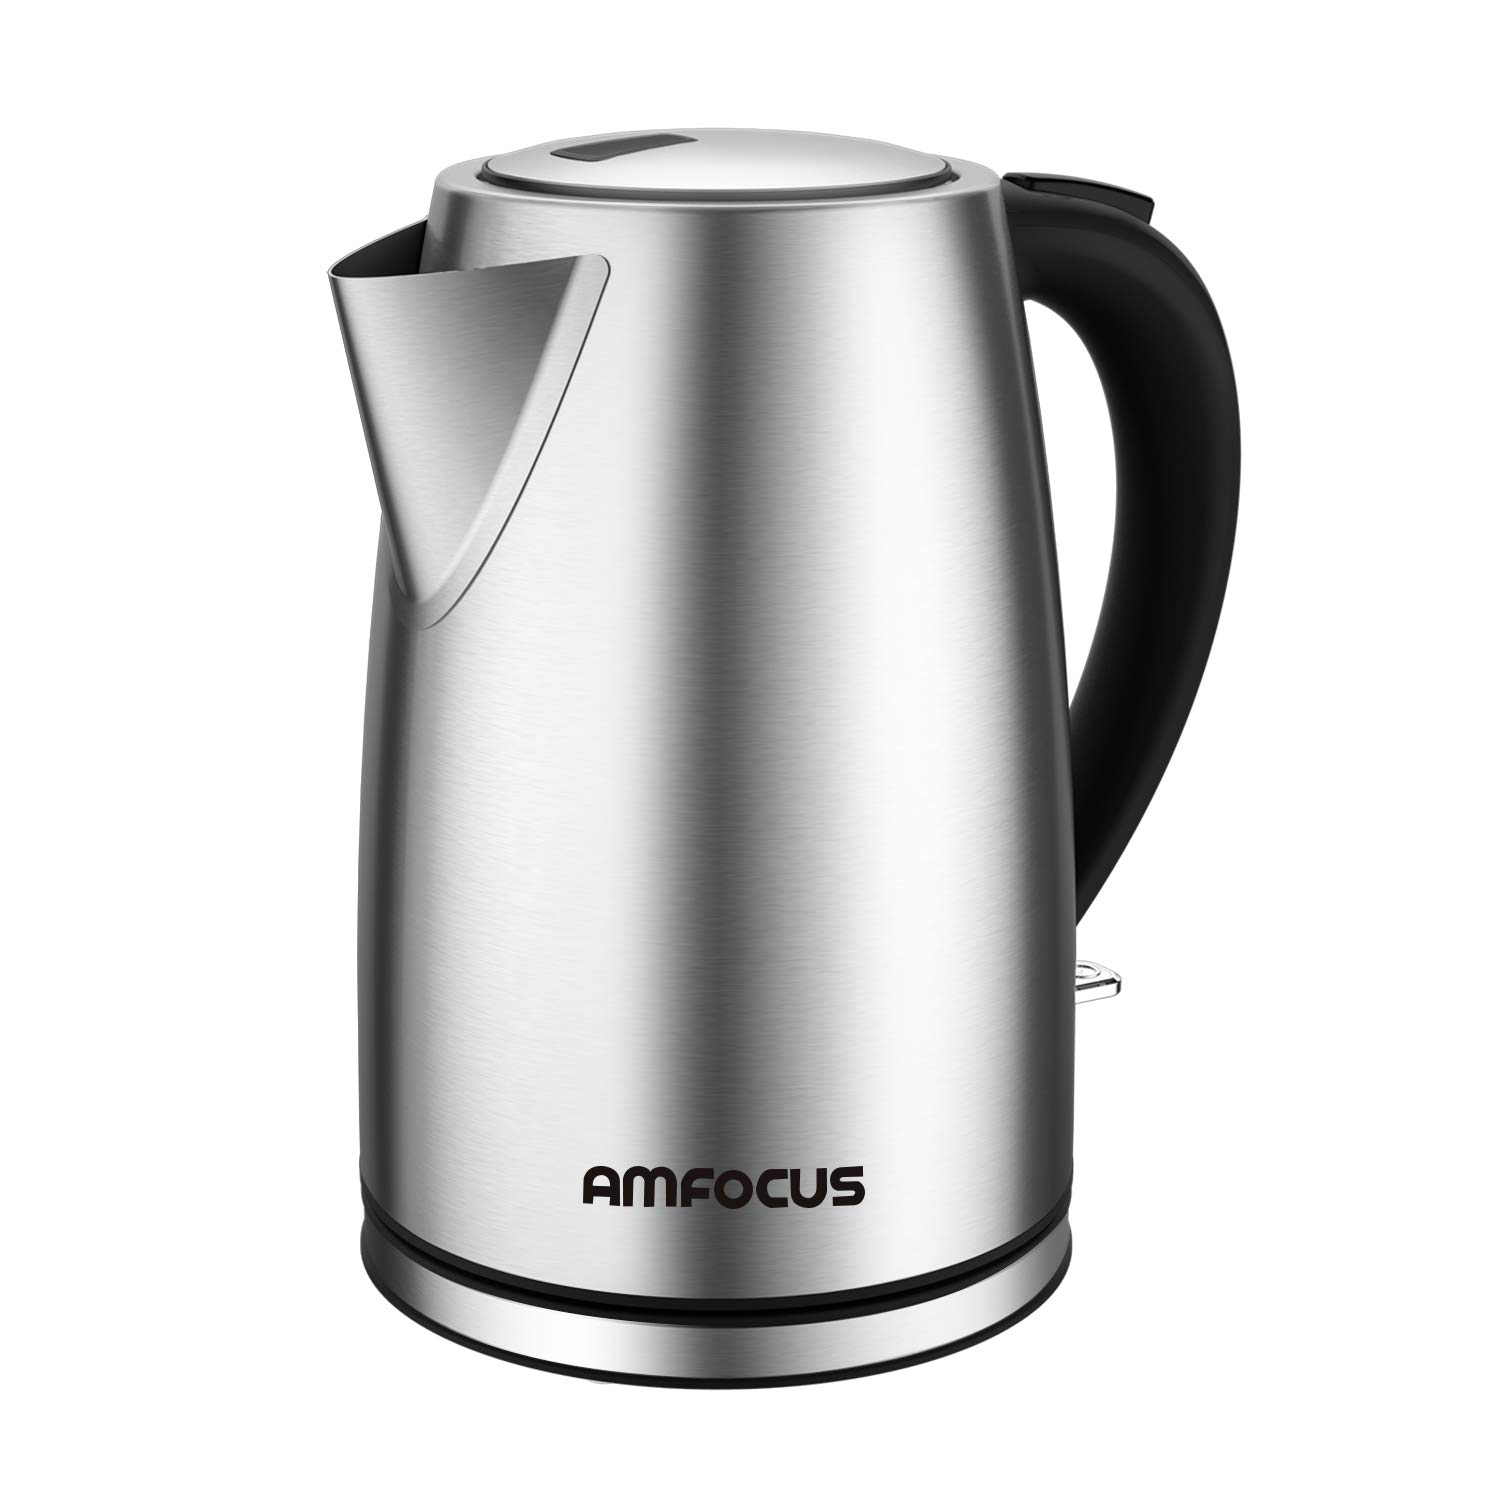 Electric Kettle - 1.7 Liter 304 Stainless Steel Hot Water kettle - Coffee Pot & Tea Kettle - Auto Shutoff and Boil Dry Protection, Cordless, FDA/FCC Approved by Weftnom (Image #1)